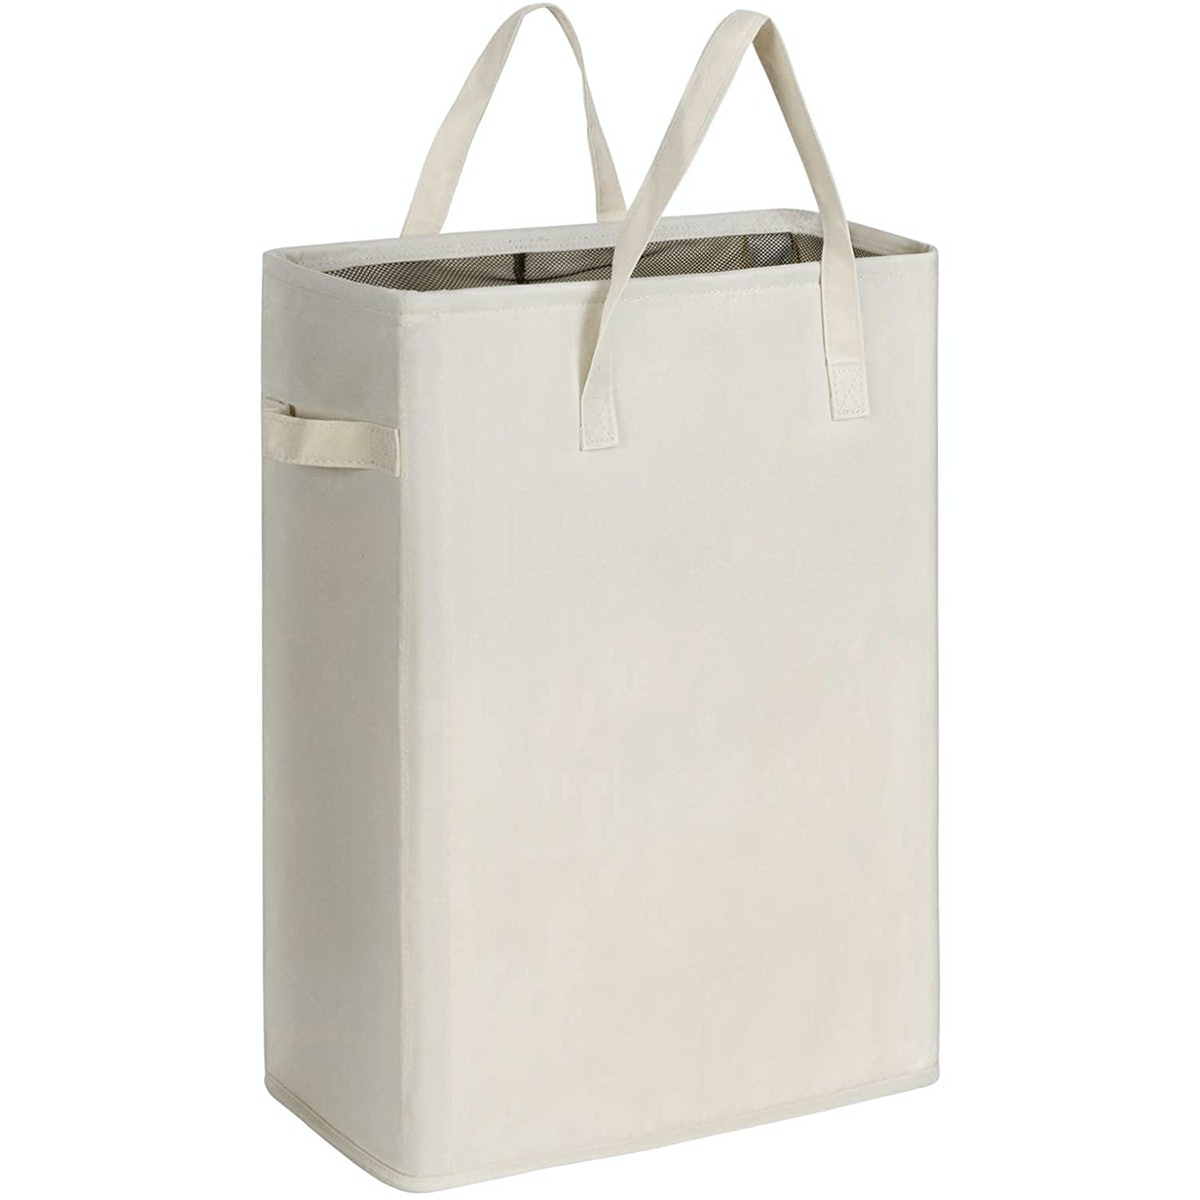 Chrislley Slim Laundry Basket with Handles